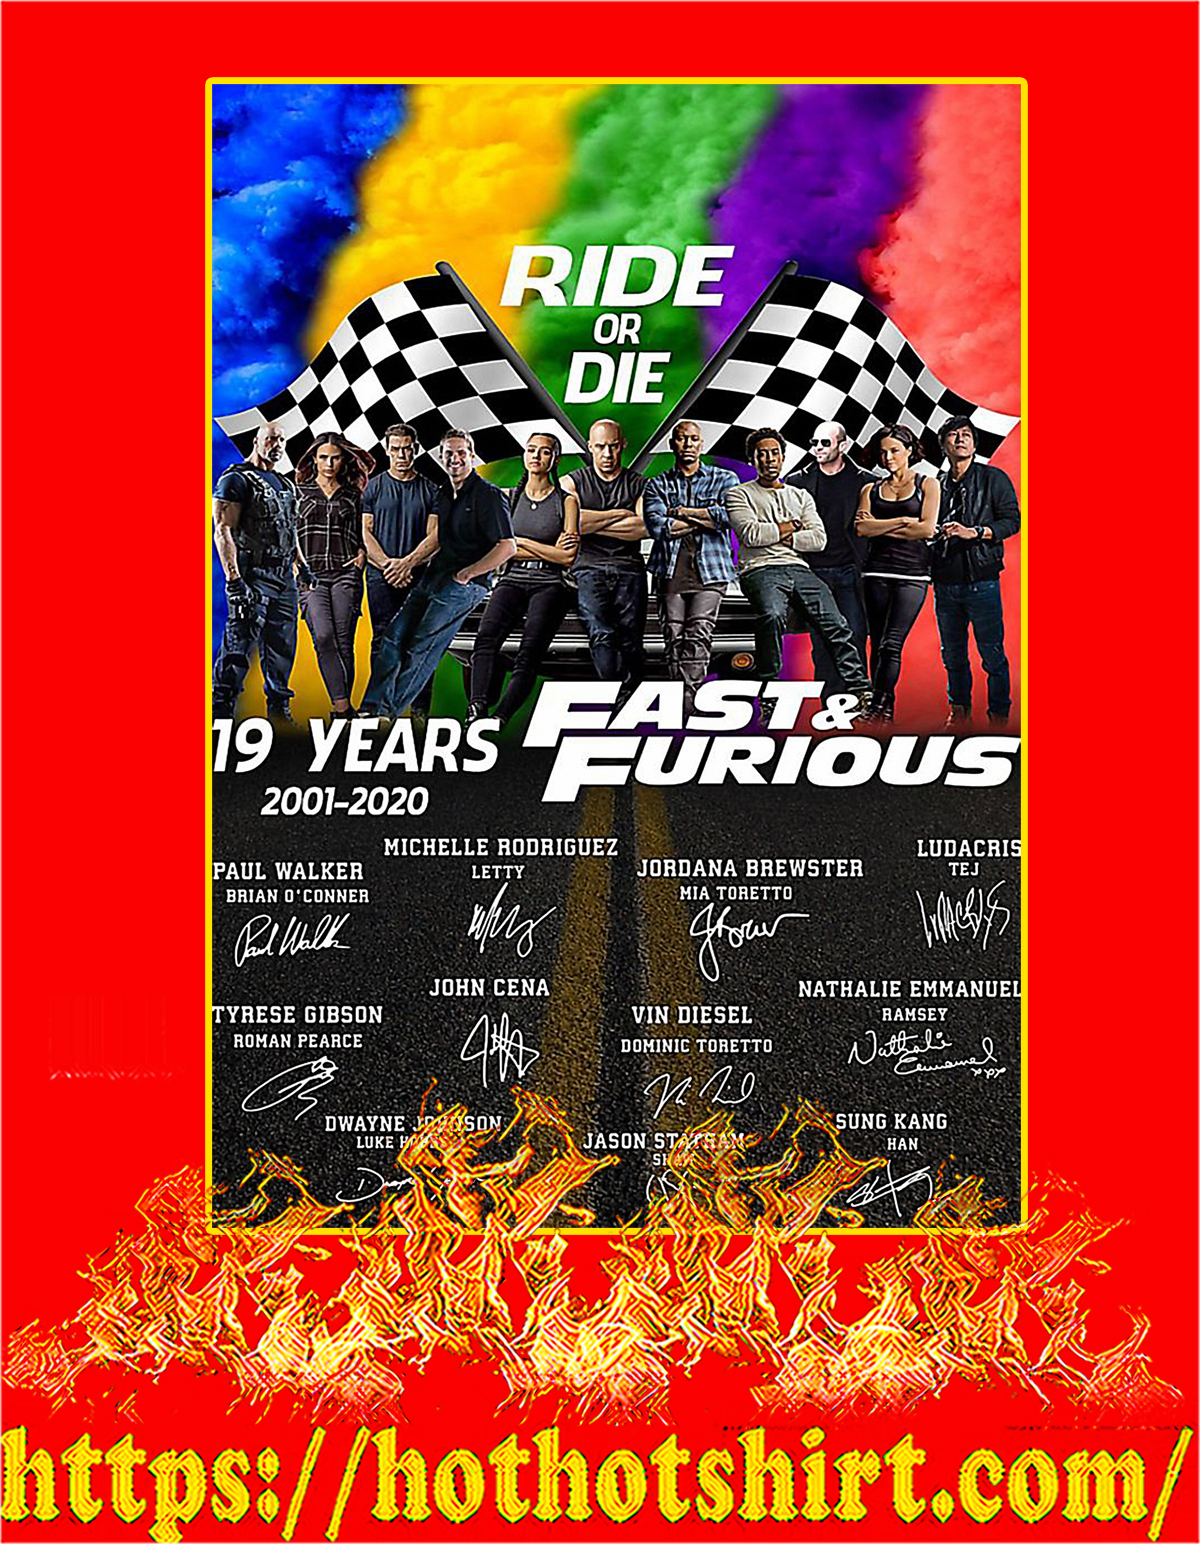 Ride or die 19 years of fast and furious poster - A4